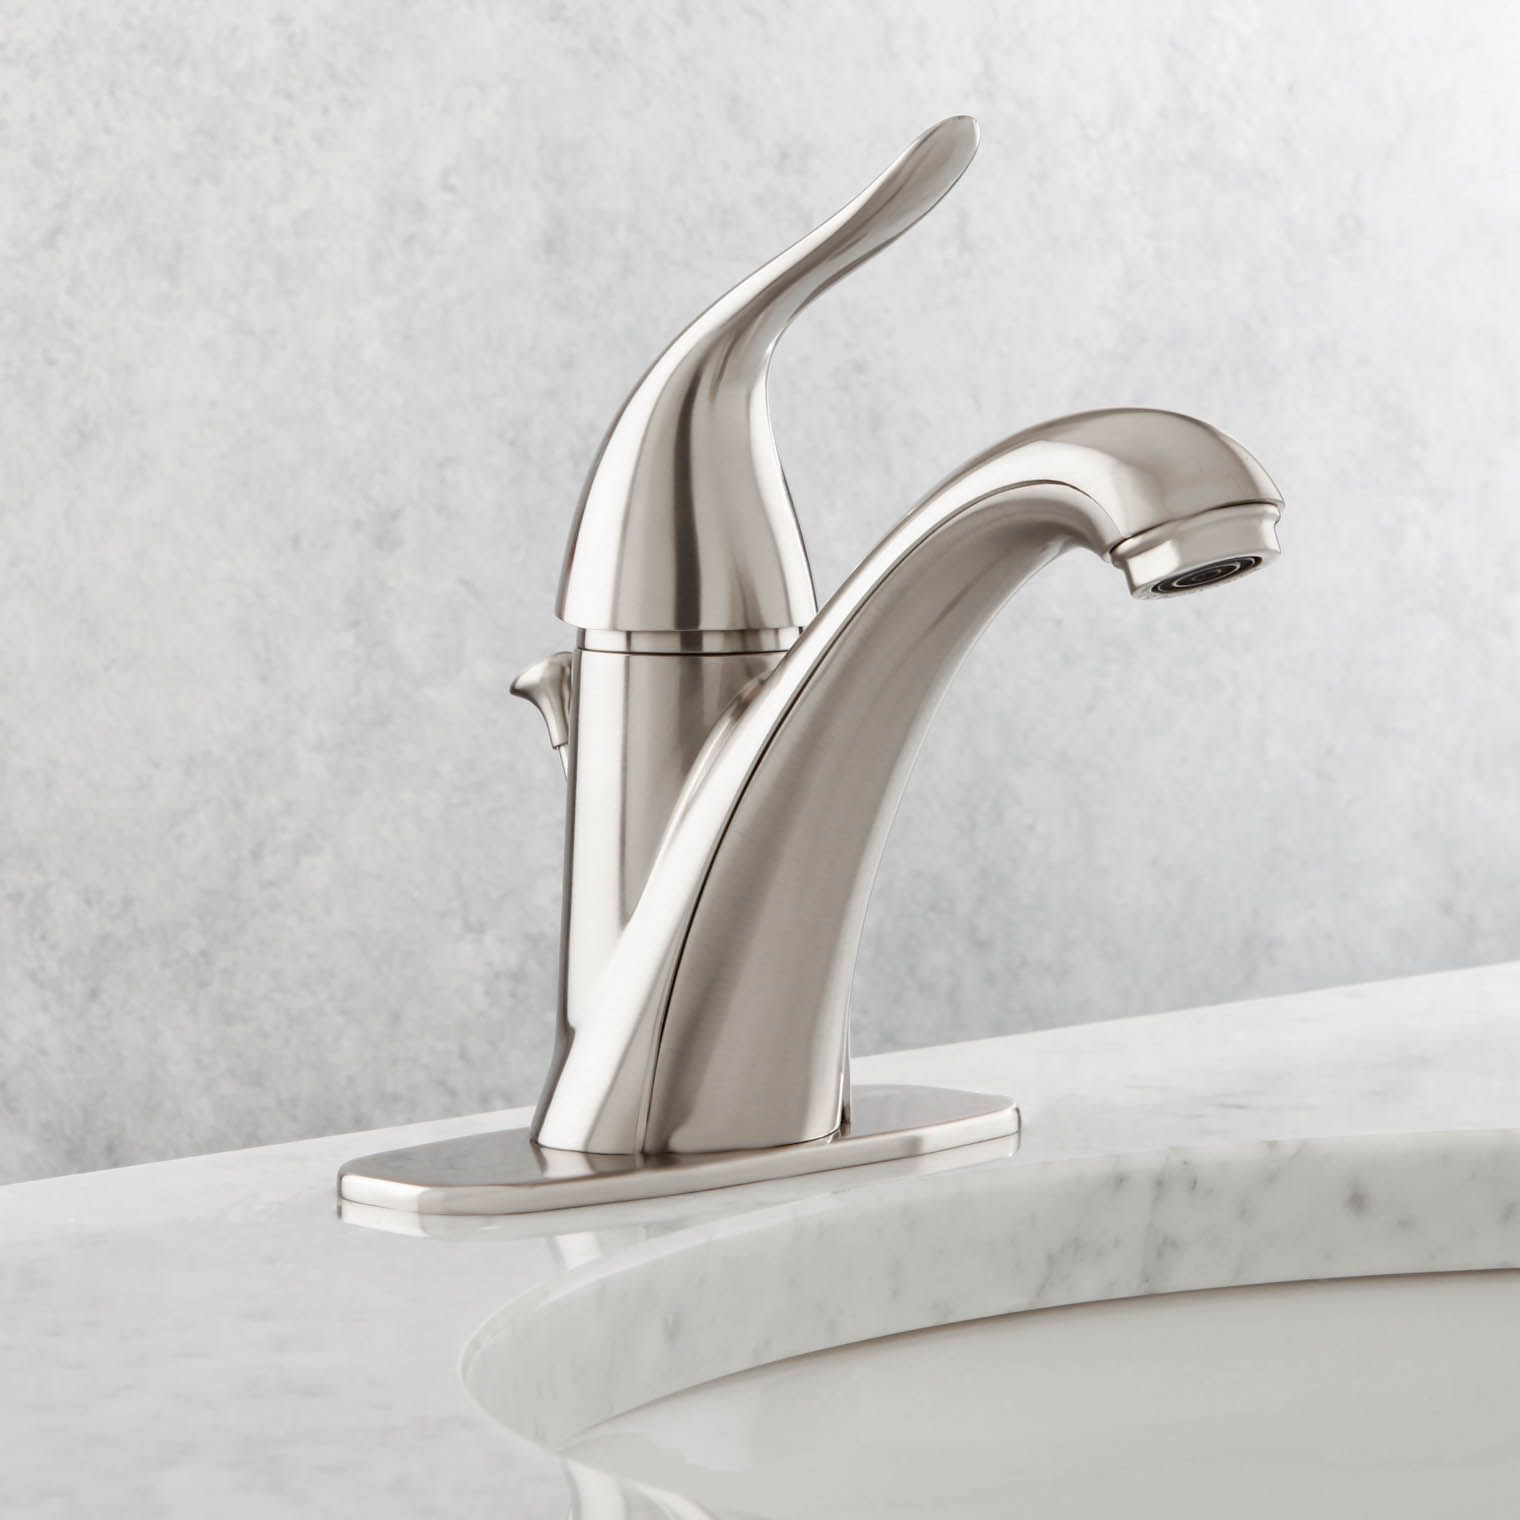 Danze D225521bn Antioch Single Hole Handle Mid Arc Bathroom Faucet In Brushed Nickel And Bath